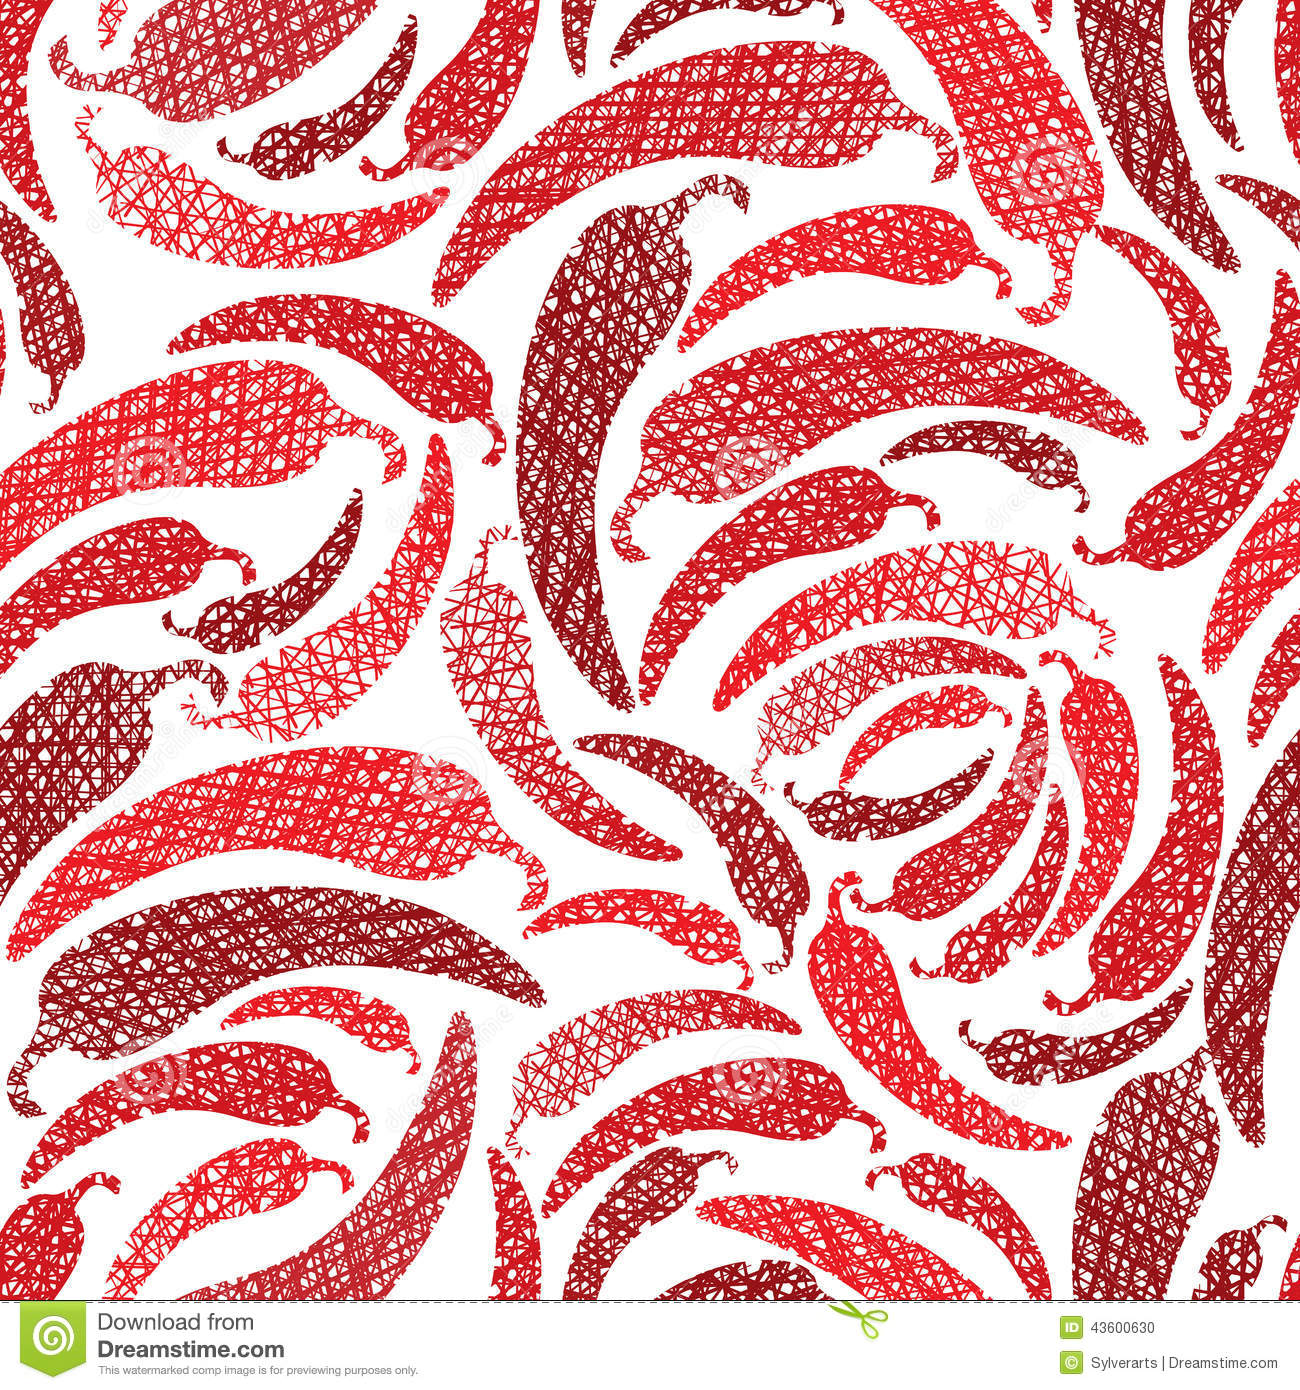 red hot chilly peppers seamless pattern mexican food